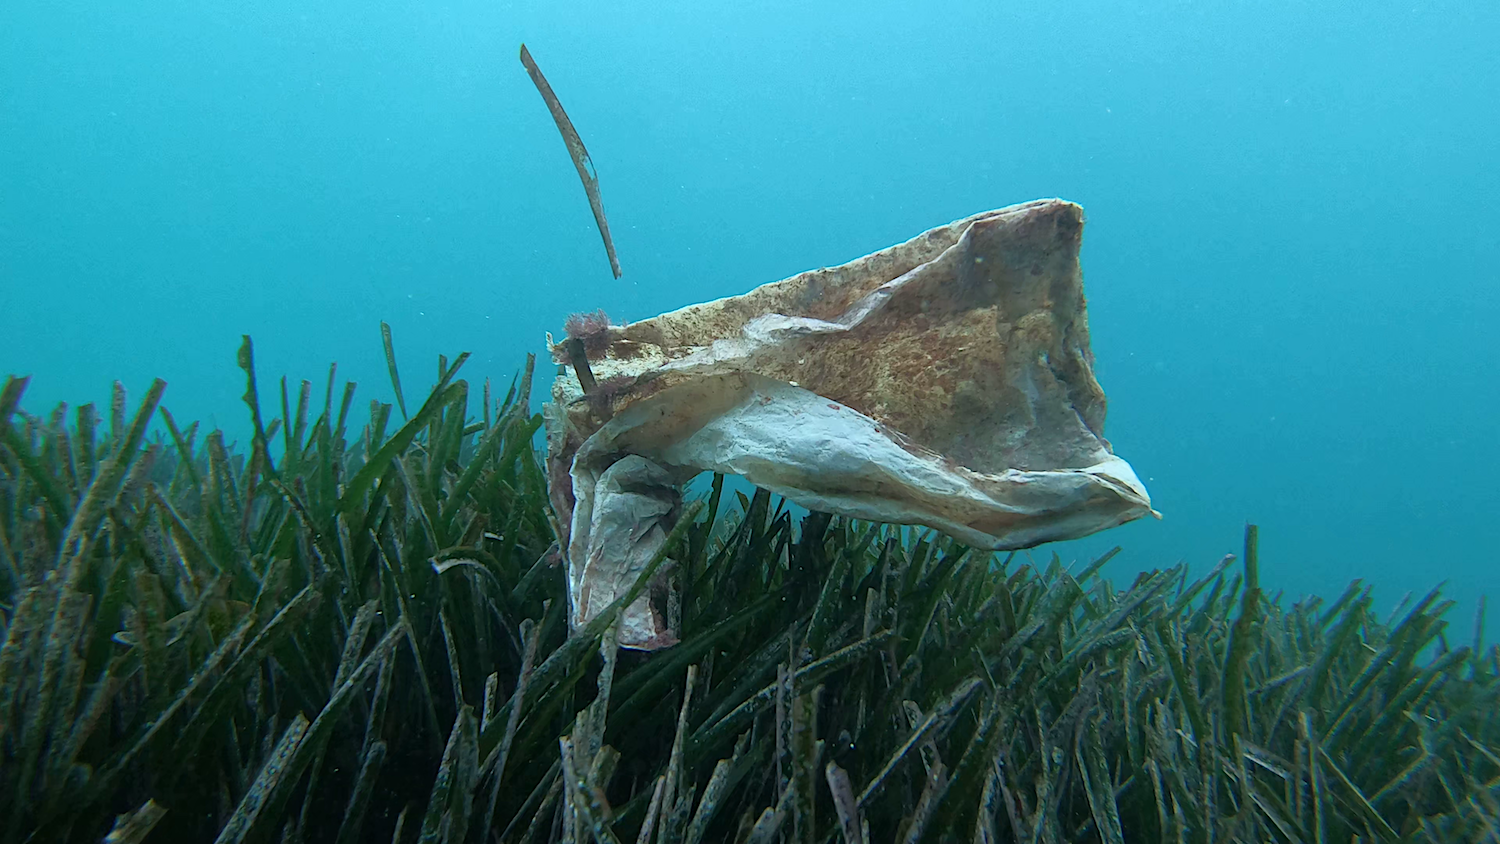 'Biodegradable' plastic bags can last for years in the ocean. Photo: Enrique Talledo